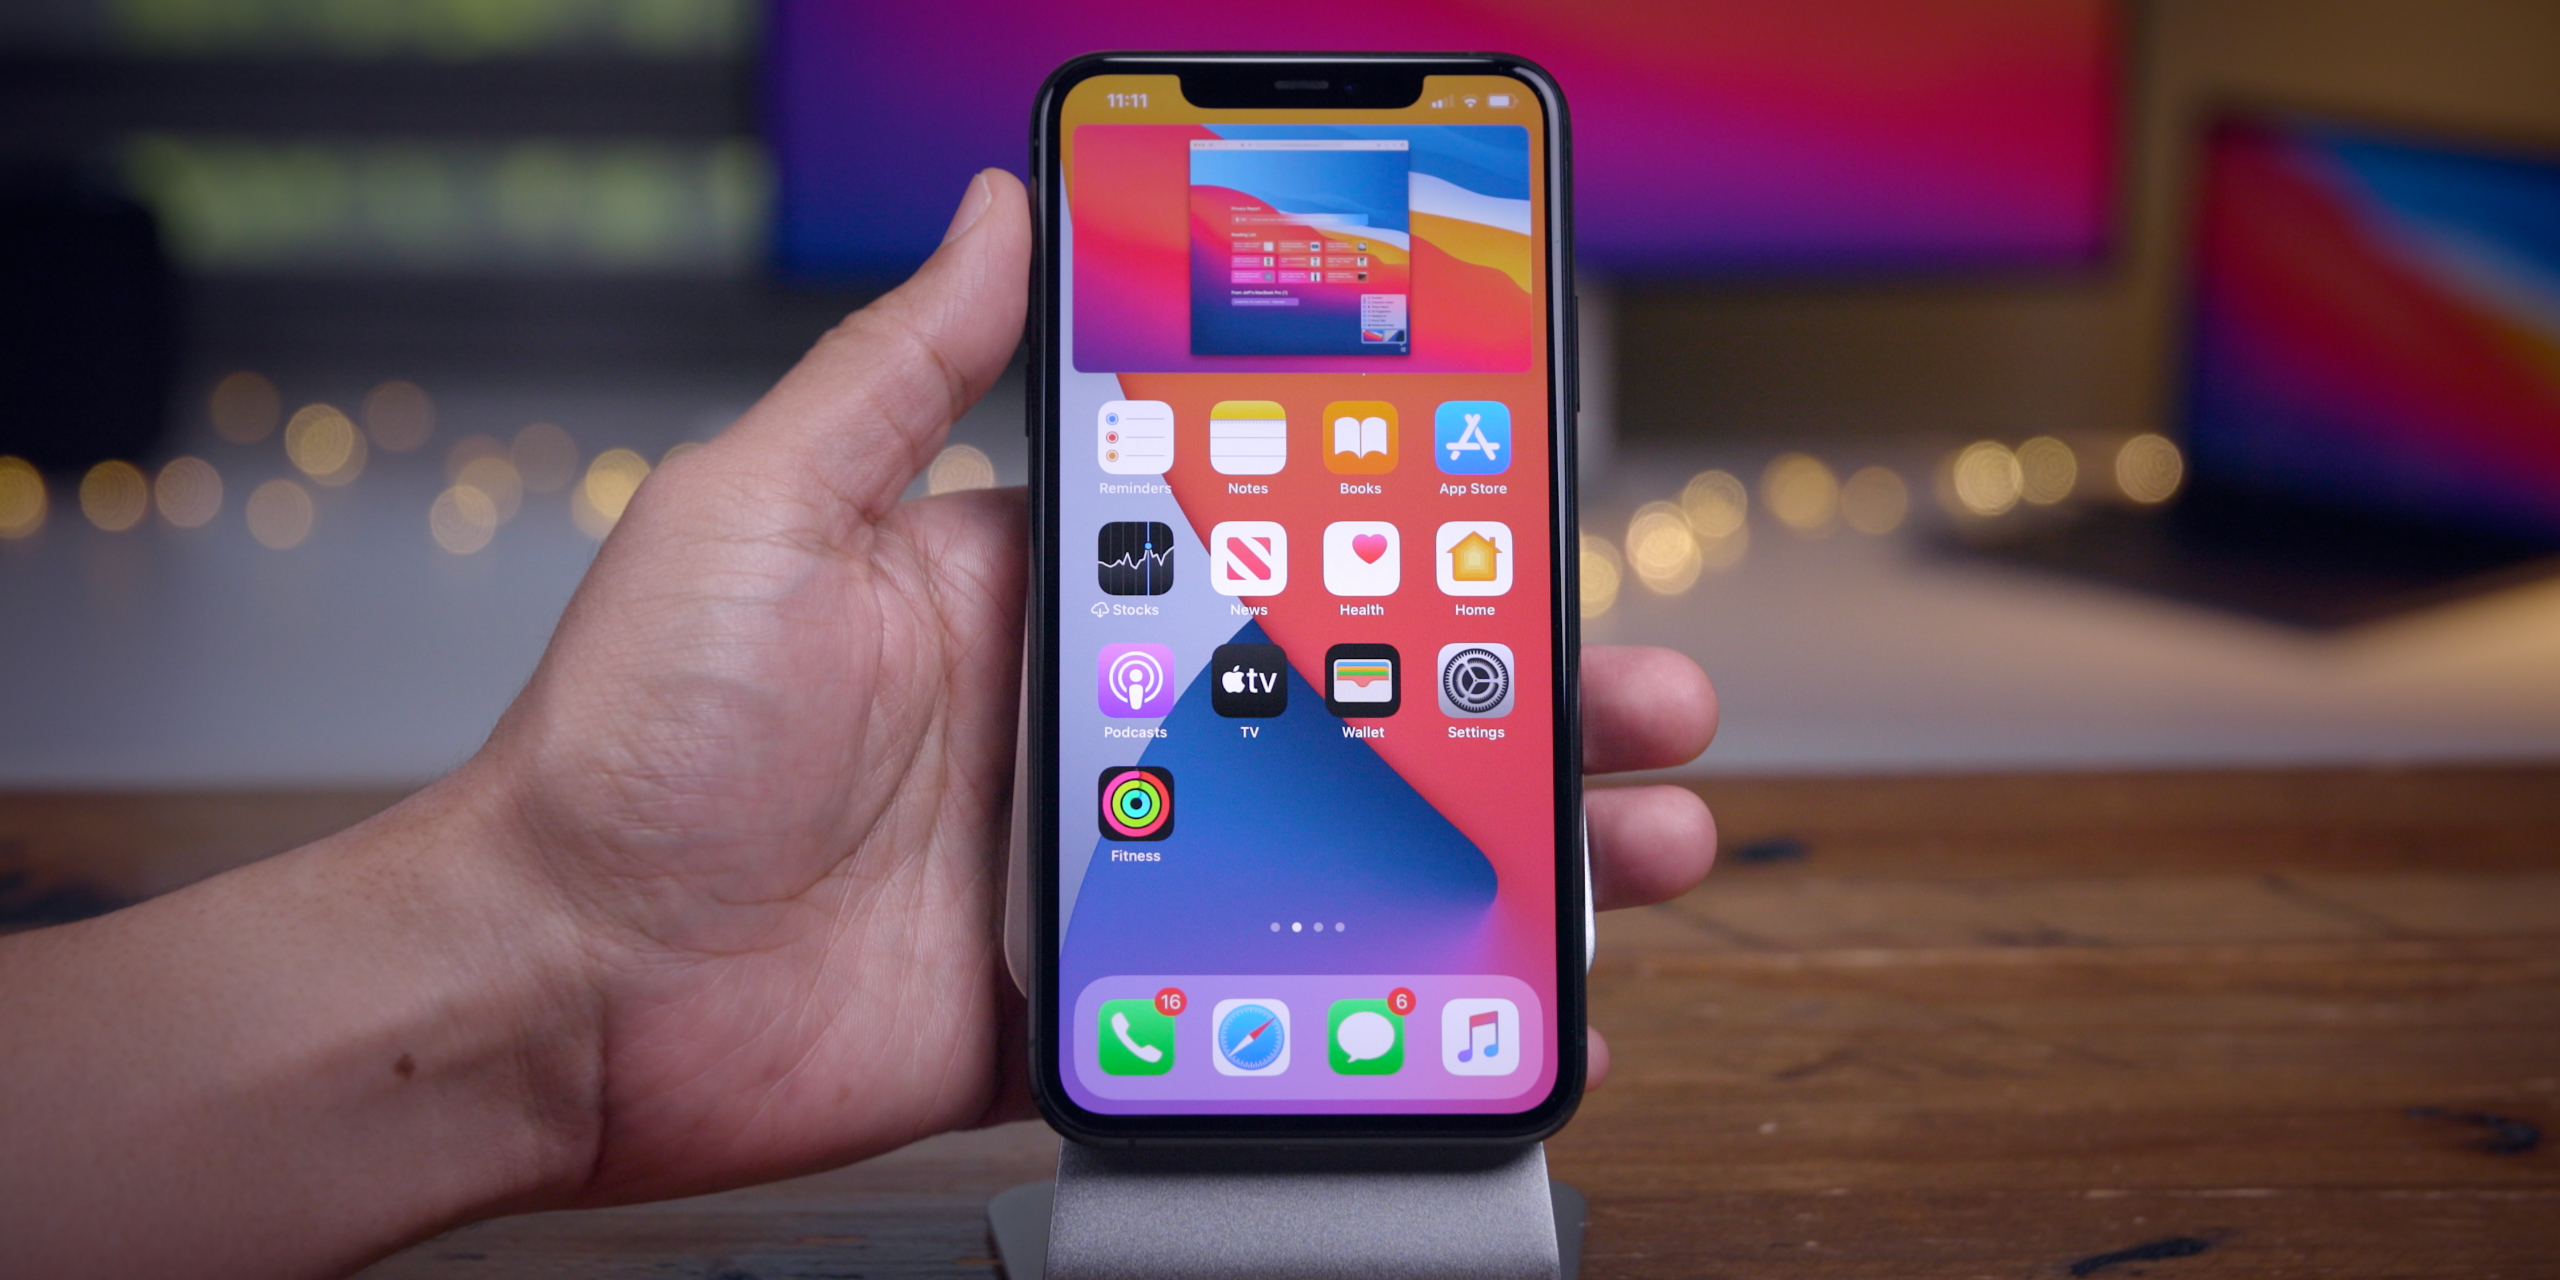 Hands-on with 50+ new iOS 14 beta 2 changes and features [Video] - 9to5Mac